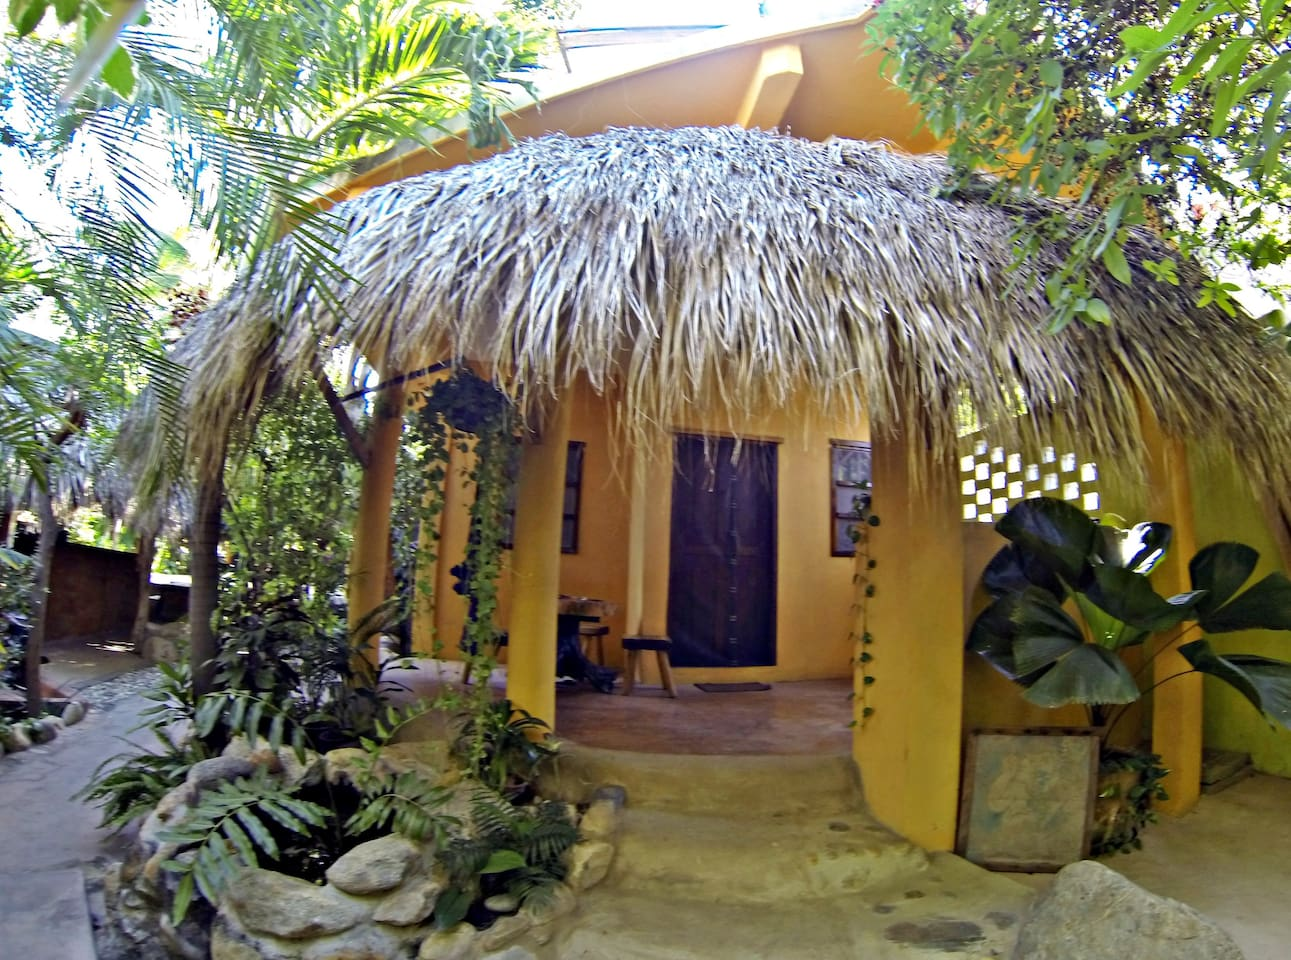 15 Totally Unique Airbnb Rentals for Under $50 | Passions